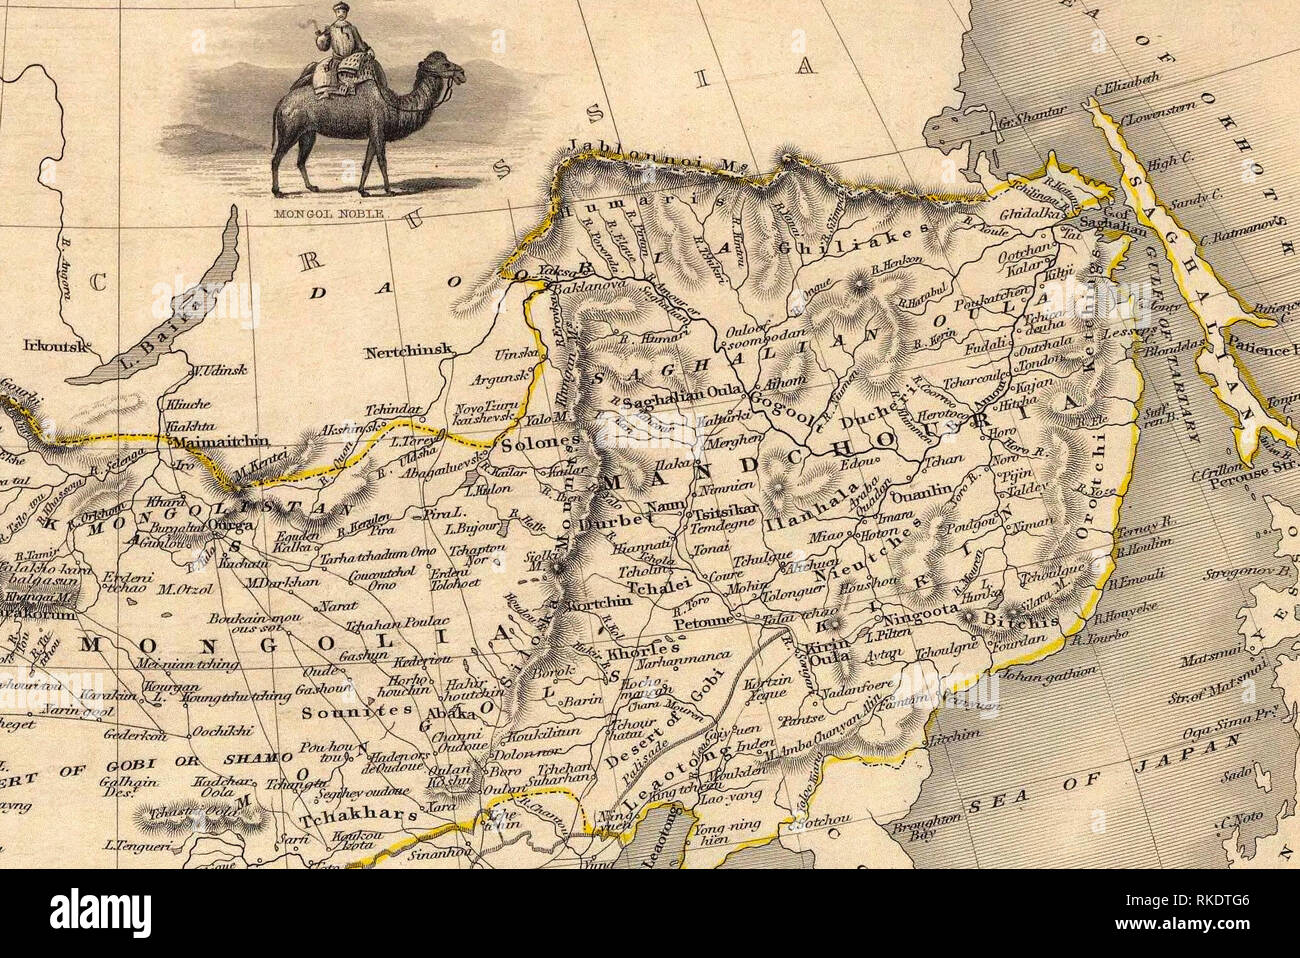 The NE section (Manchuria and Mongolia) of the map of the northern and western part of the Chinese Empire - Thibet, Mongolia, and Mandchouria. The borders are shows as per the 1858 treaty of Aigun. - Stock Image